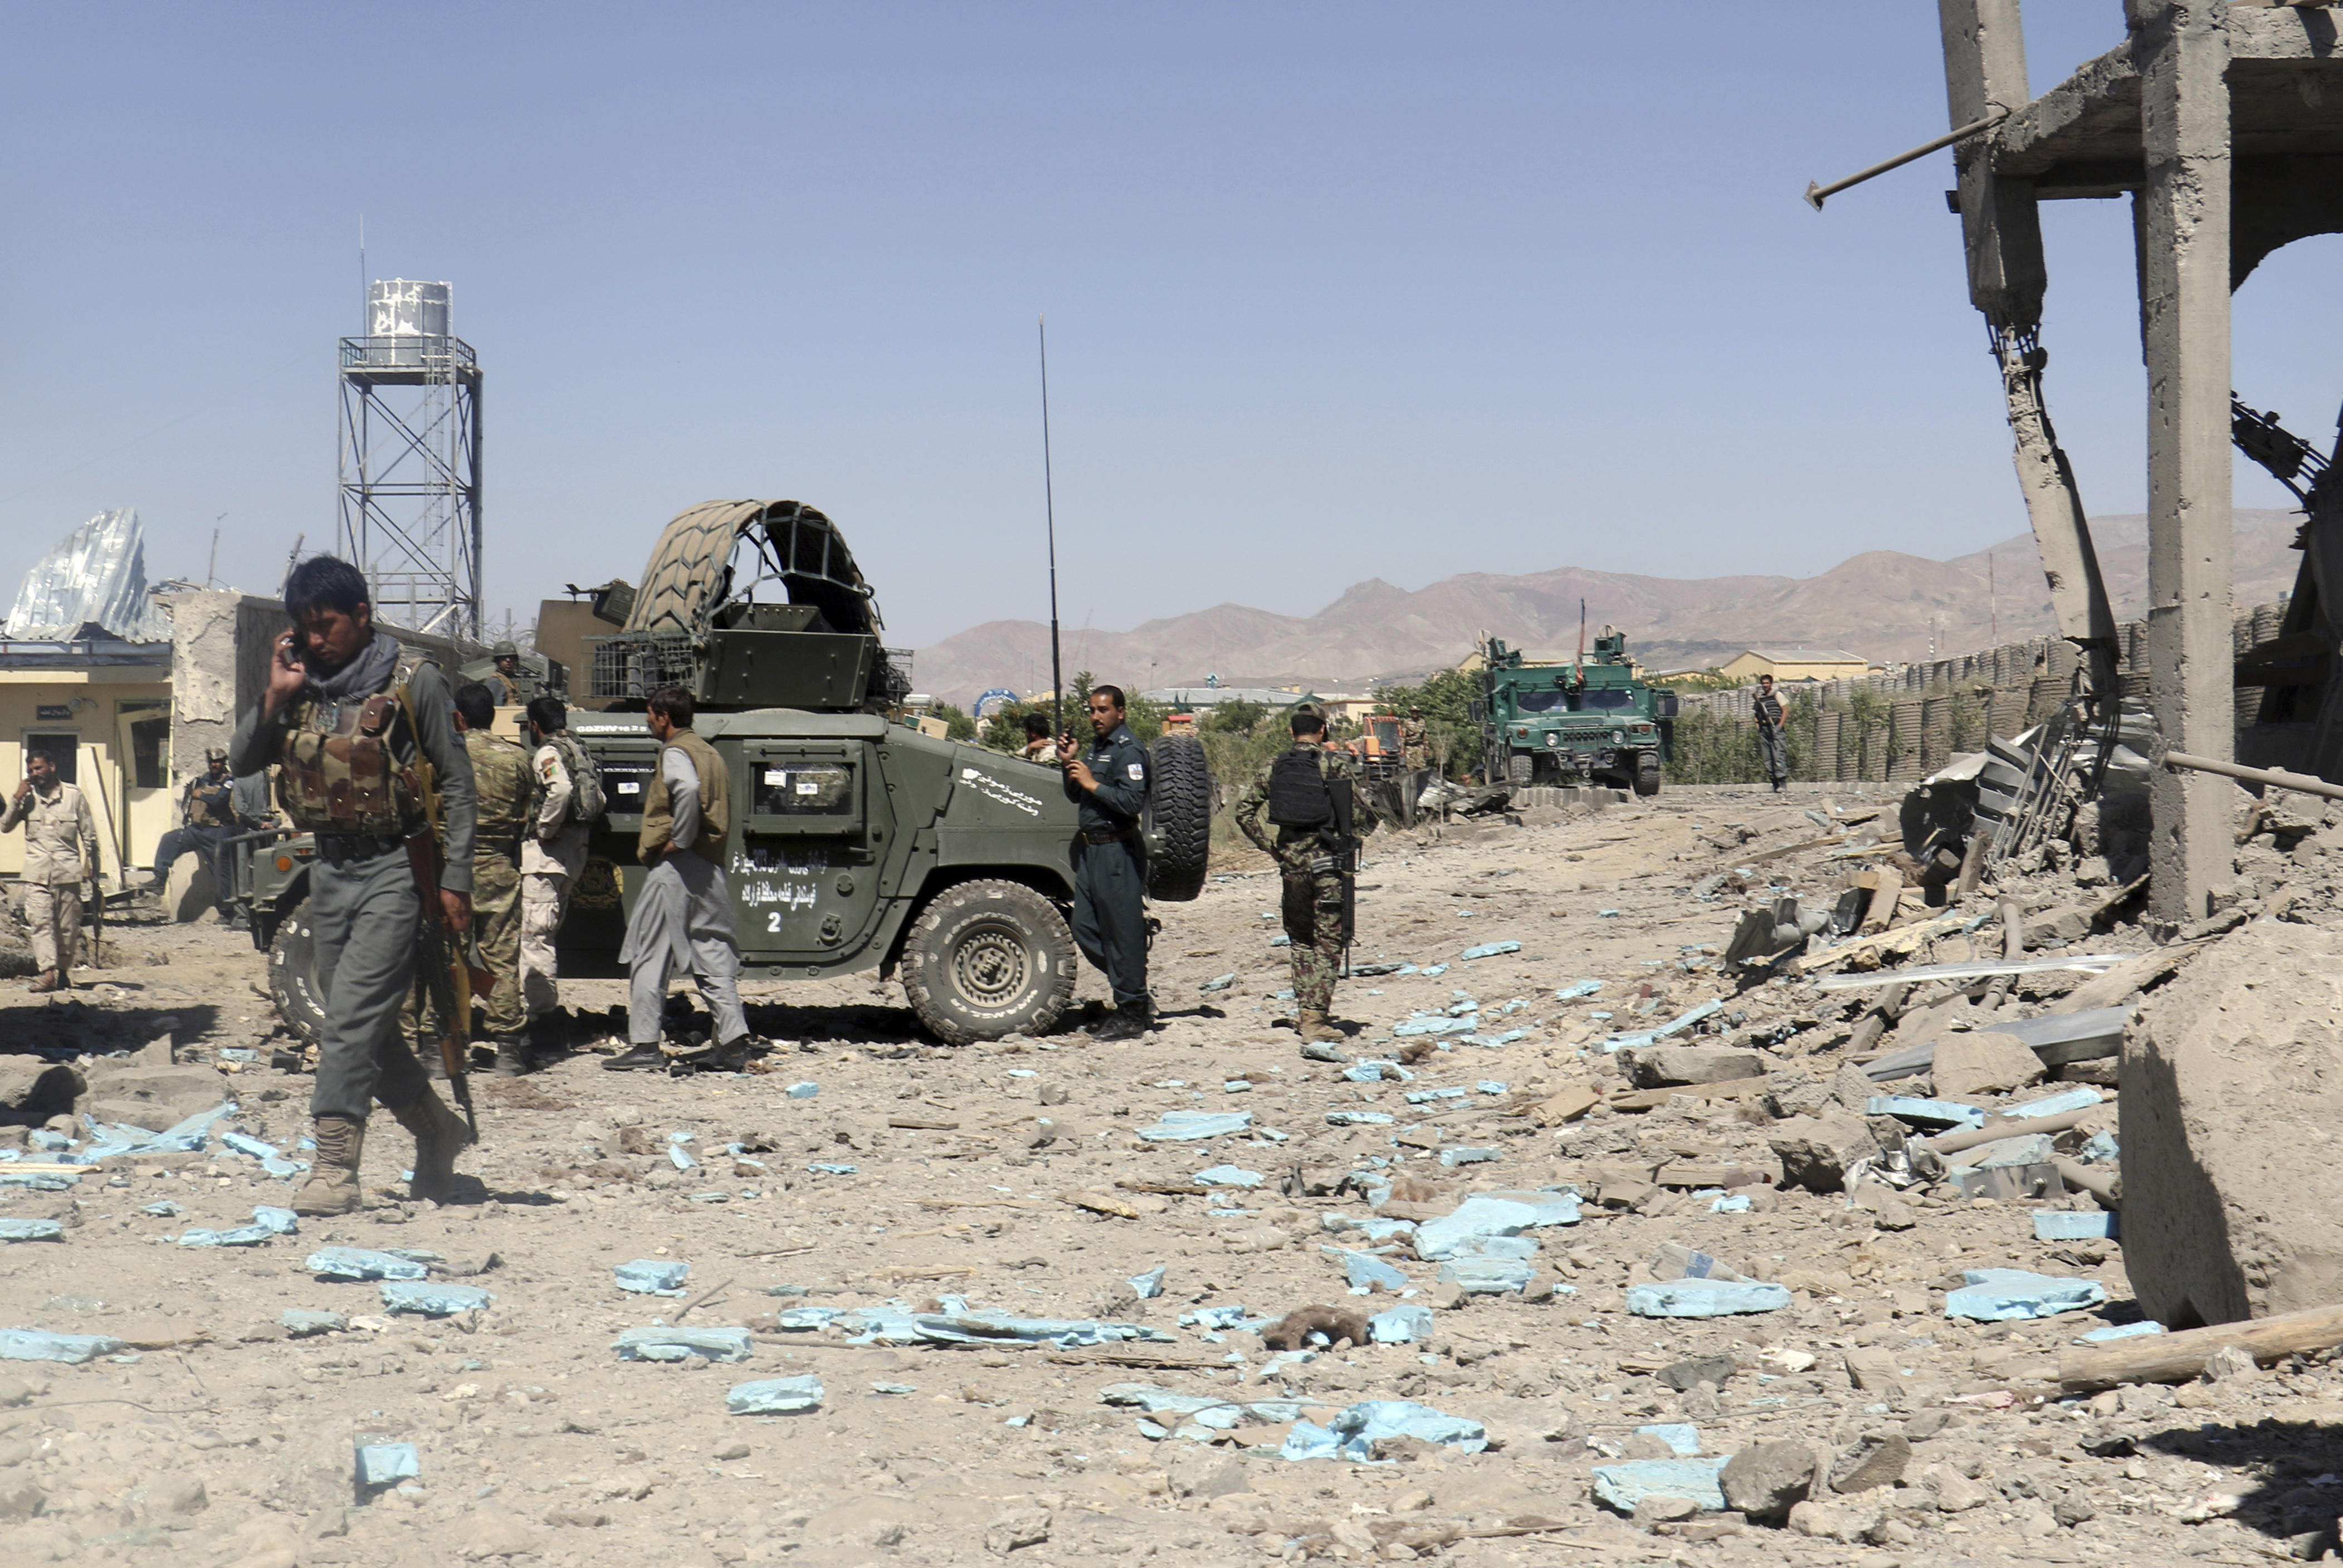 KABUL, Afghanistan -- The Taliban stormed a police headquarters in eastern Afghanistan on Sunday after striking it with two suicide car bombs, ...